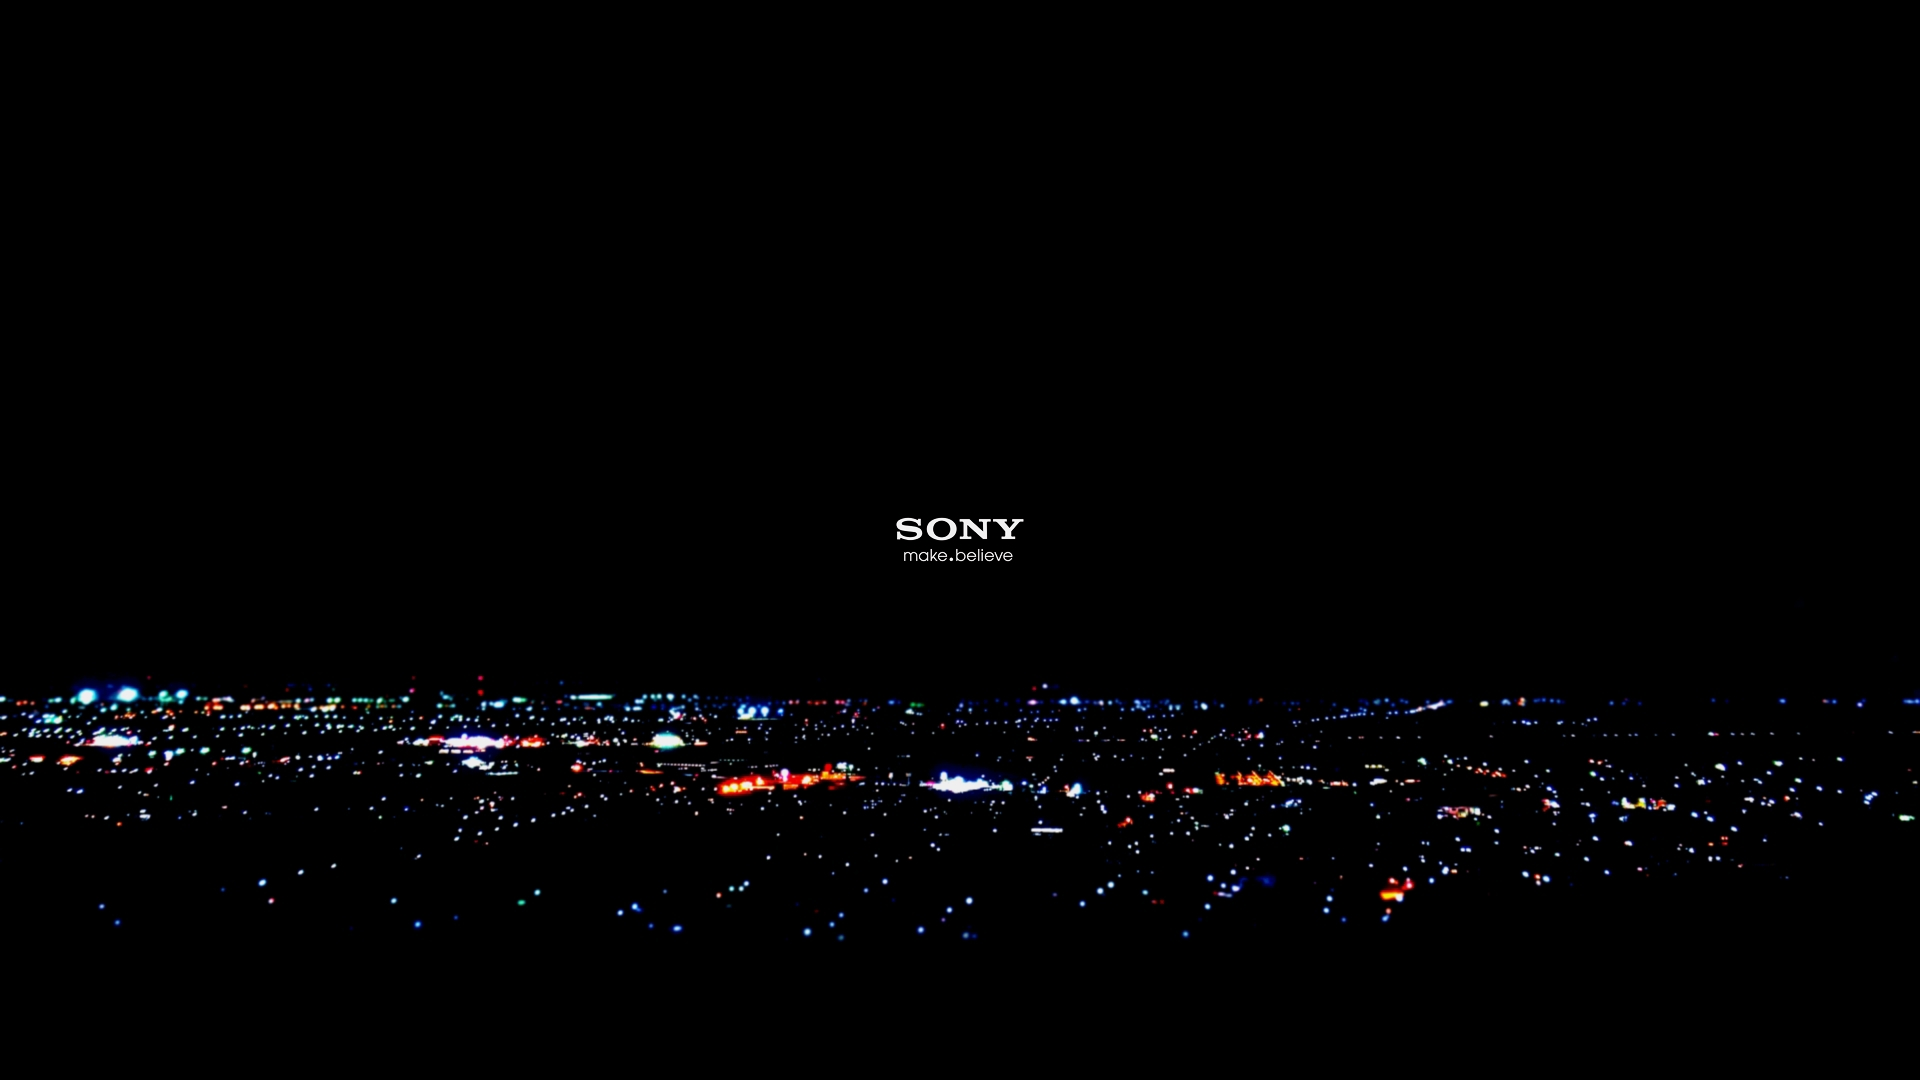 Sony Wallpapers